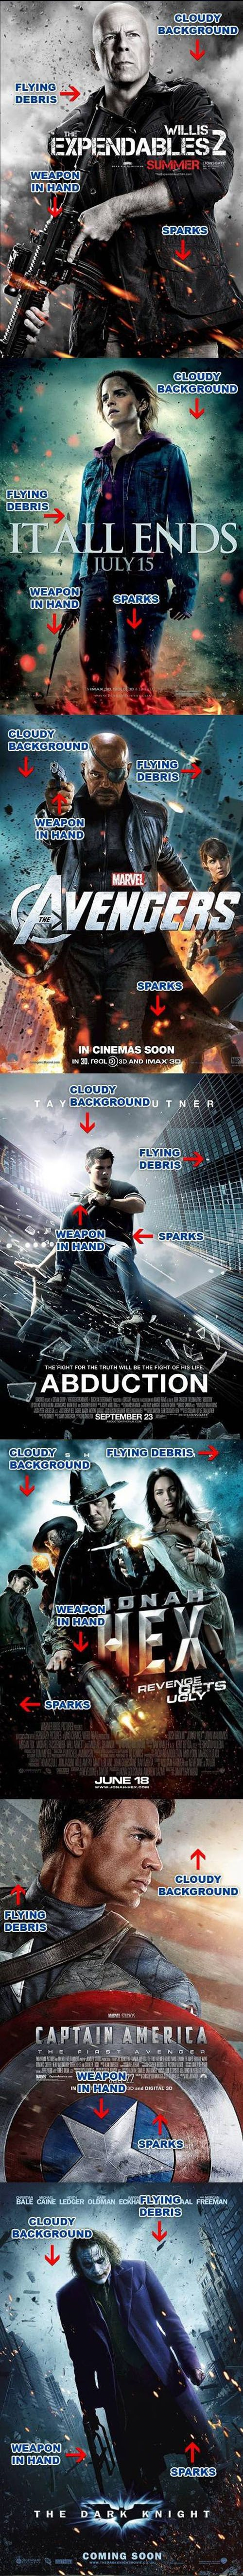 New Trend in Action Movie Poster Design